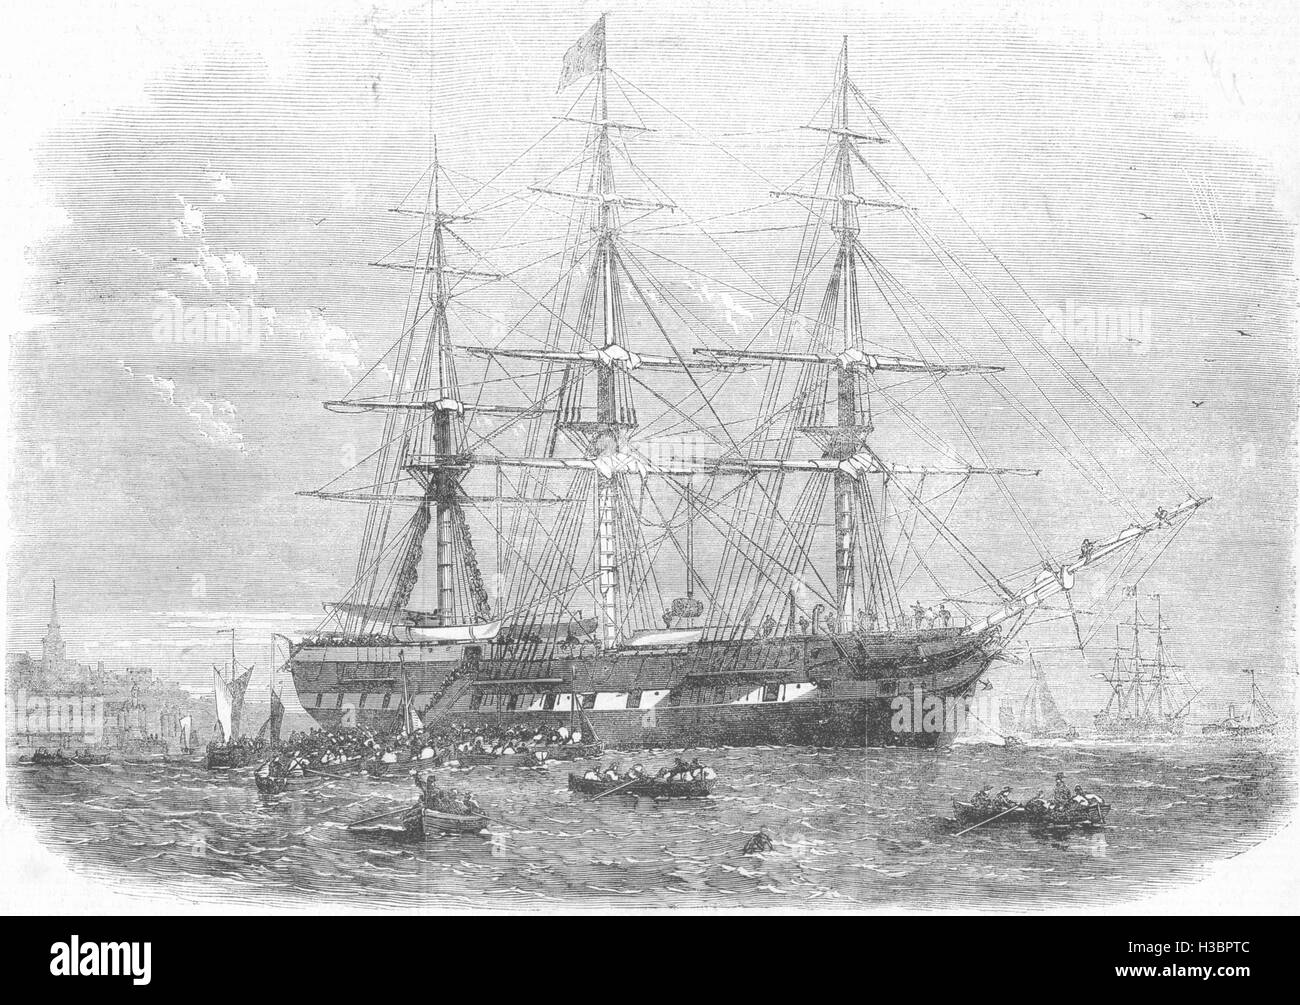 SOCIETY The Gertrude Emigrant-ship 1862. The Illustrated London News - Stock Image